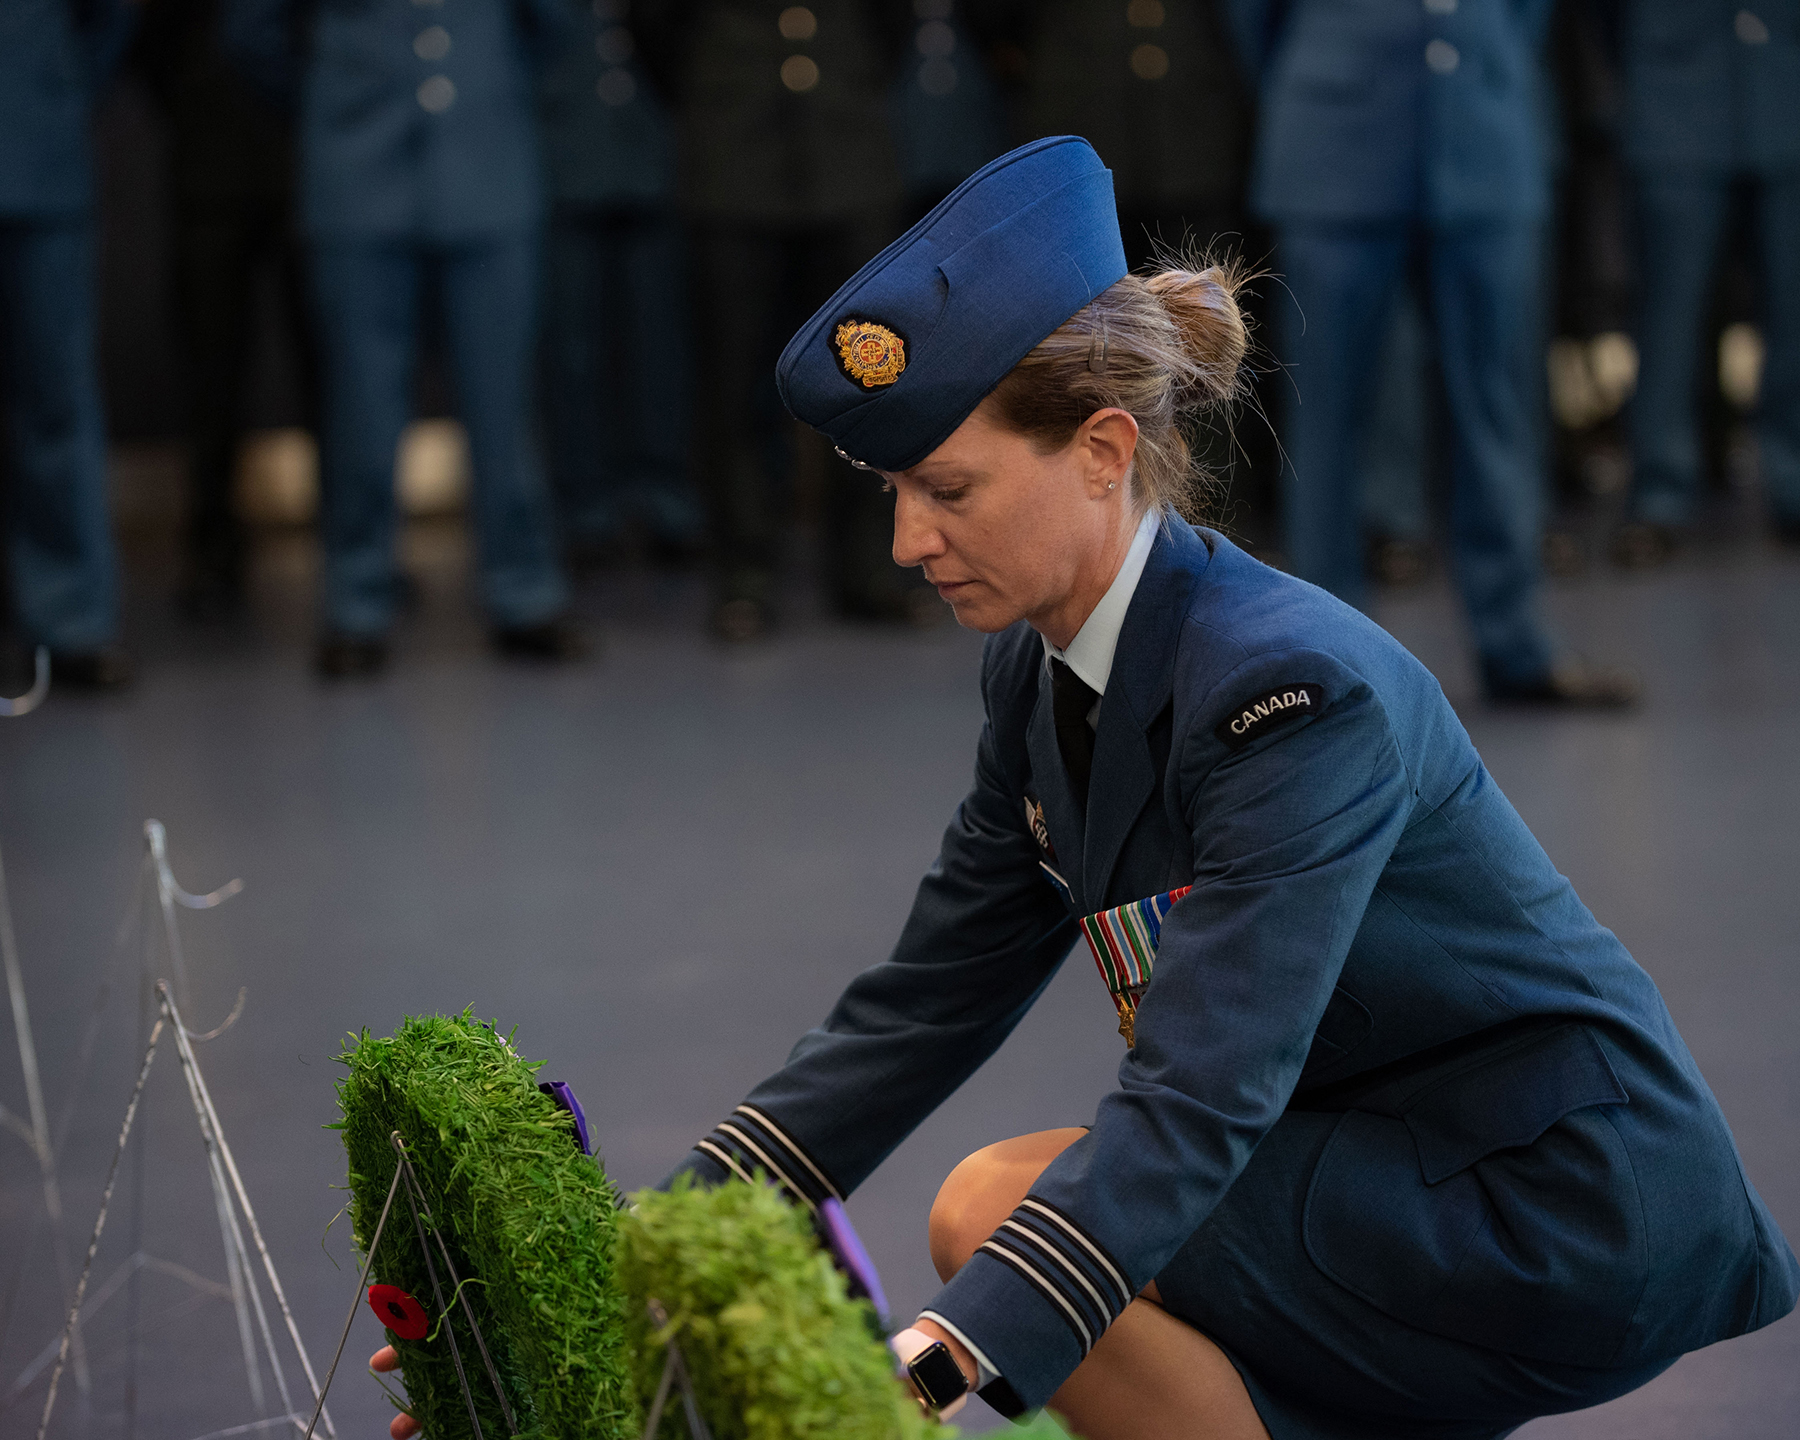 Lieutenant-Colonel Laura Gagné, commanding officer of 2 Air Expeditionary Training Squadron, 2 Wing Bagotville, lays a wreath during the September 15, 2019, ceremony attended by 2 Wing-3 Wing/Canadian Forces Base Bagotville, Québec, members to mark the 79th anniversary of the Battle of Britain. PHOTO: Corporal Dominic Duchesne-Beaulieu, BN06-2019-0487-023